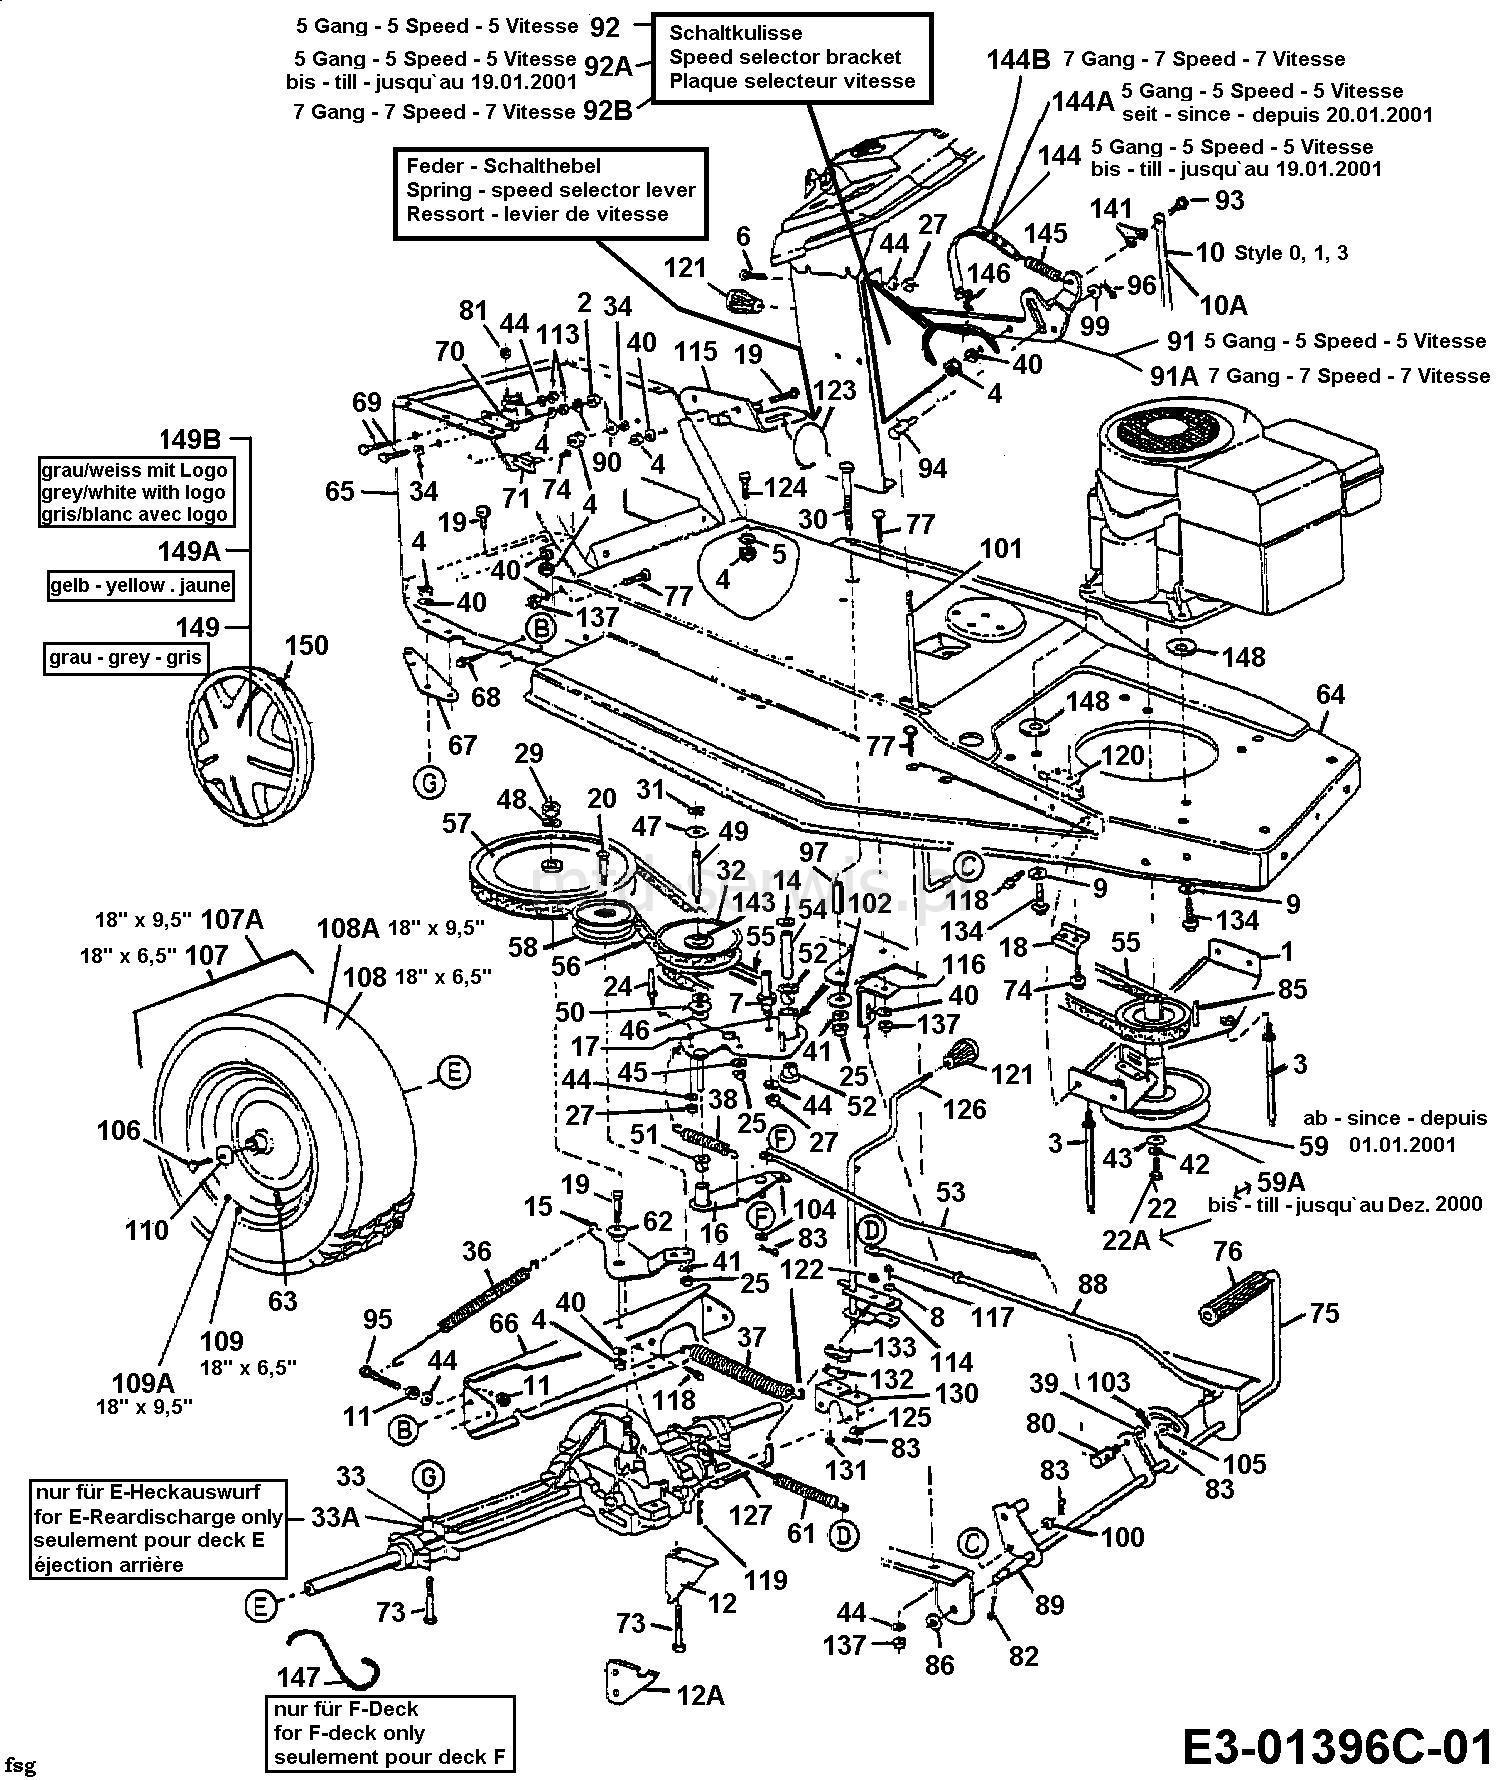 Mtd je 130 wiring diagram wikishare category 7022 mtd je 130 wiring diagram